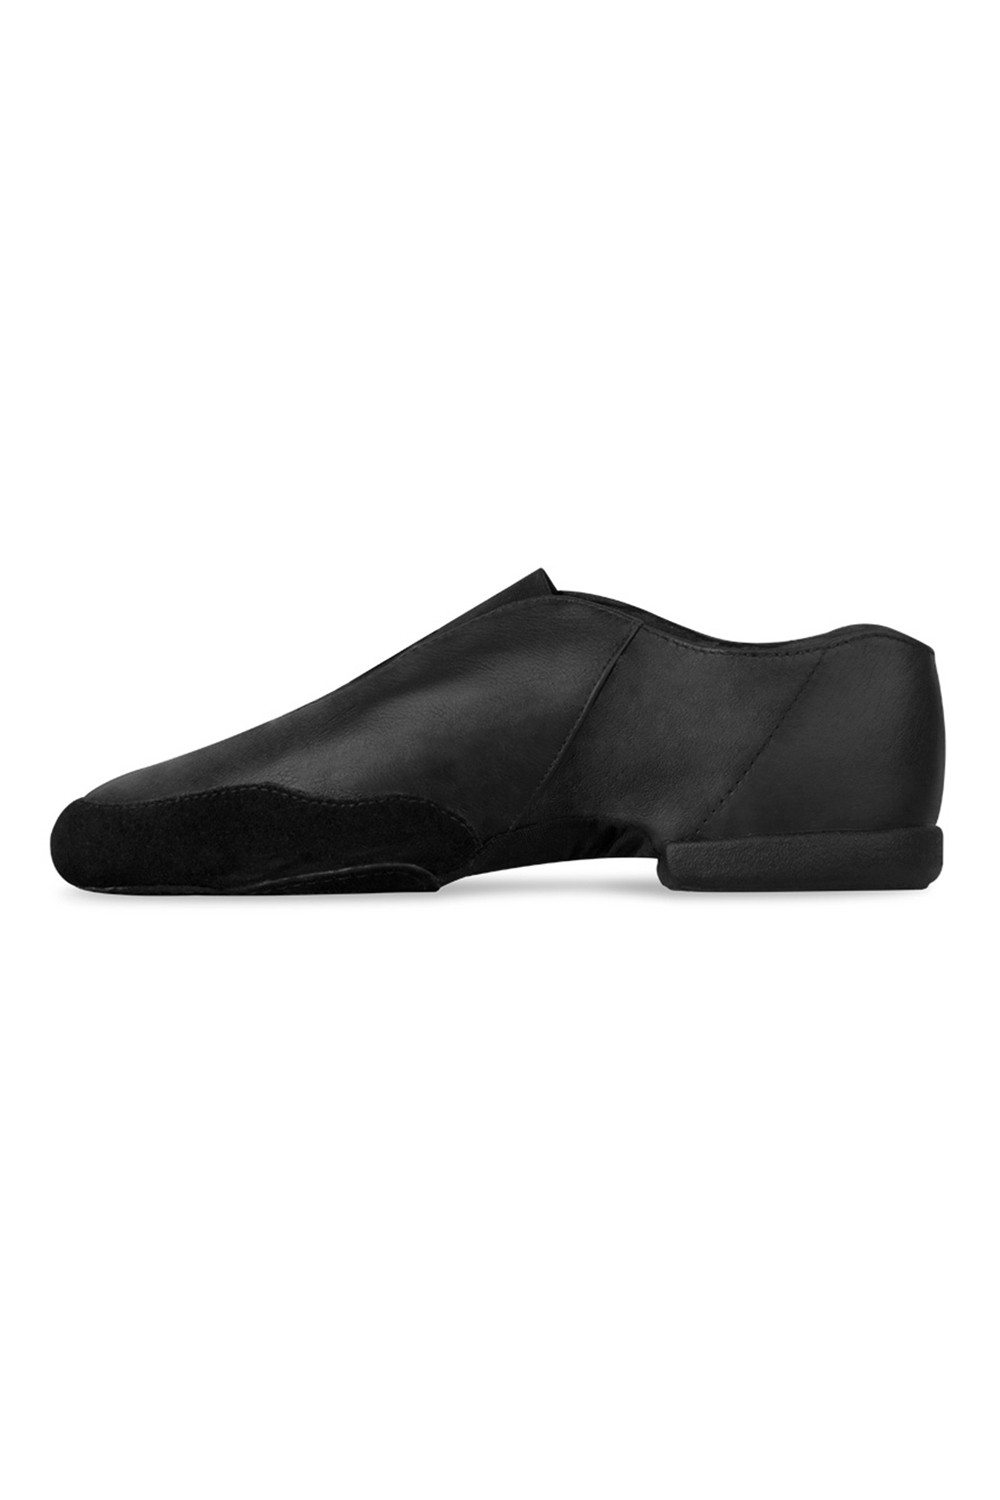 Trisole Lo Women's Jazz Shoes